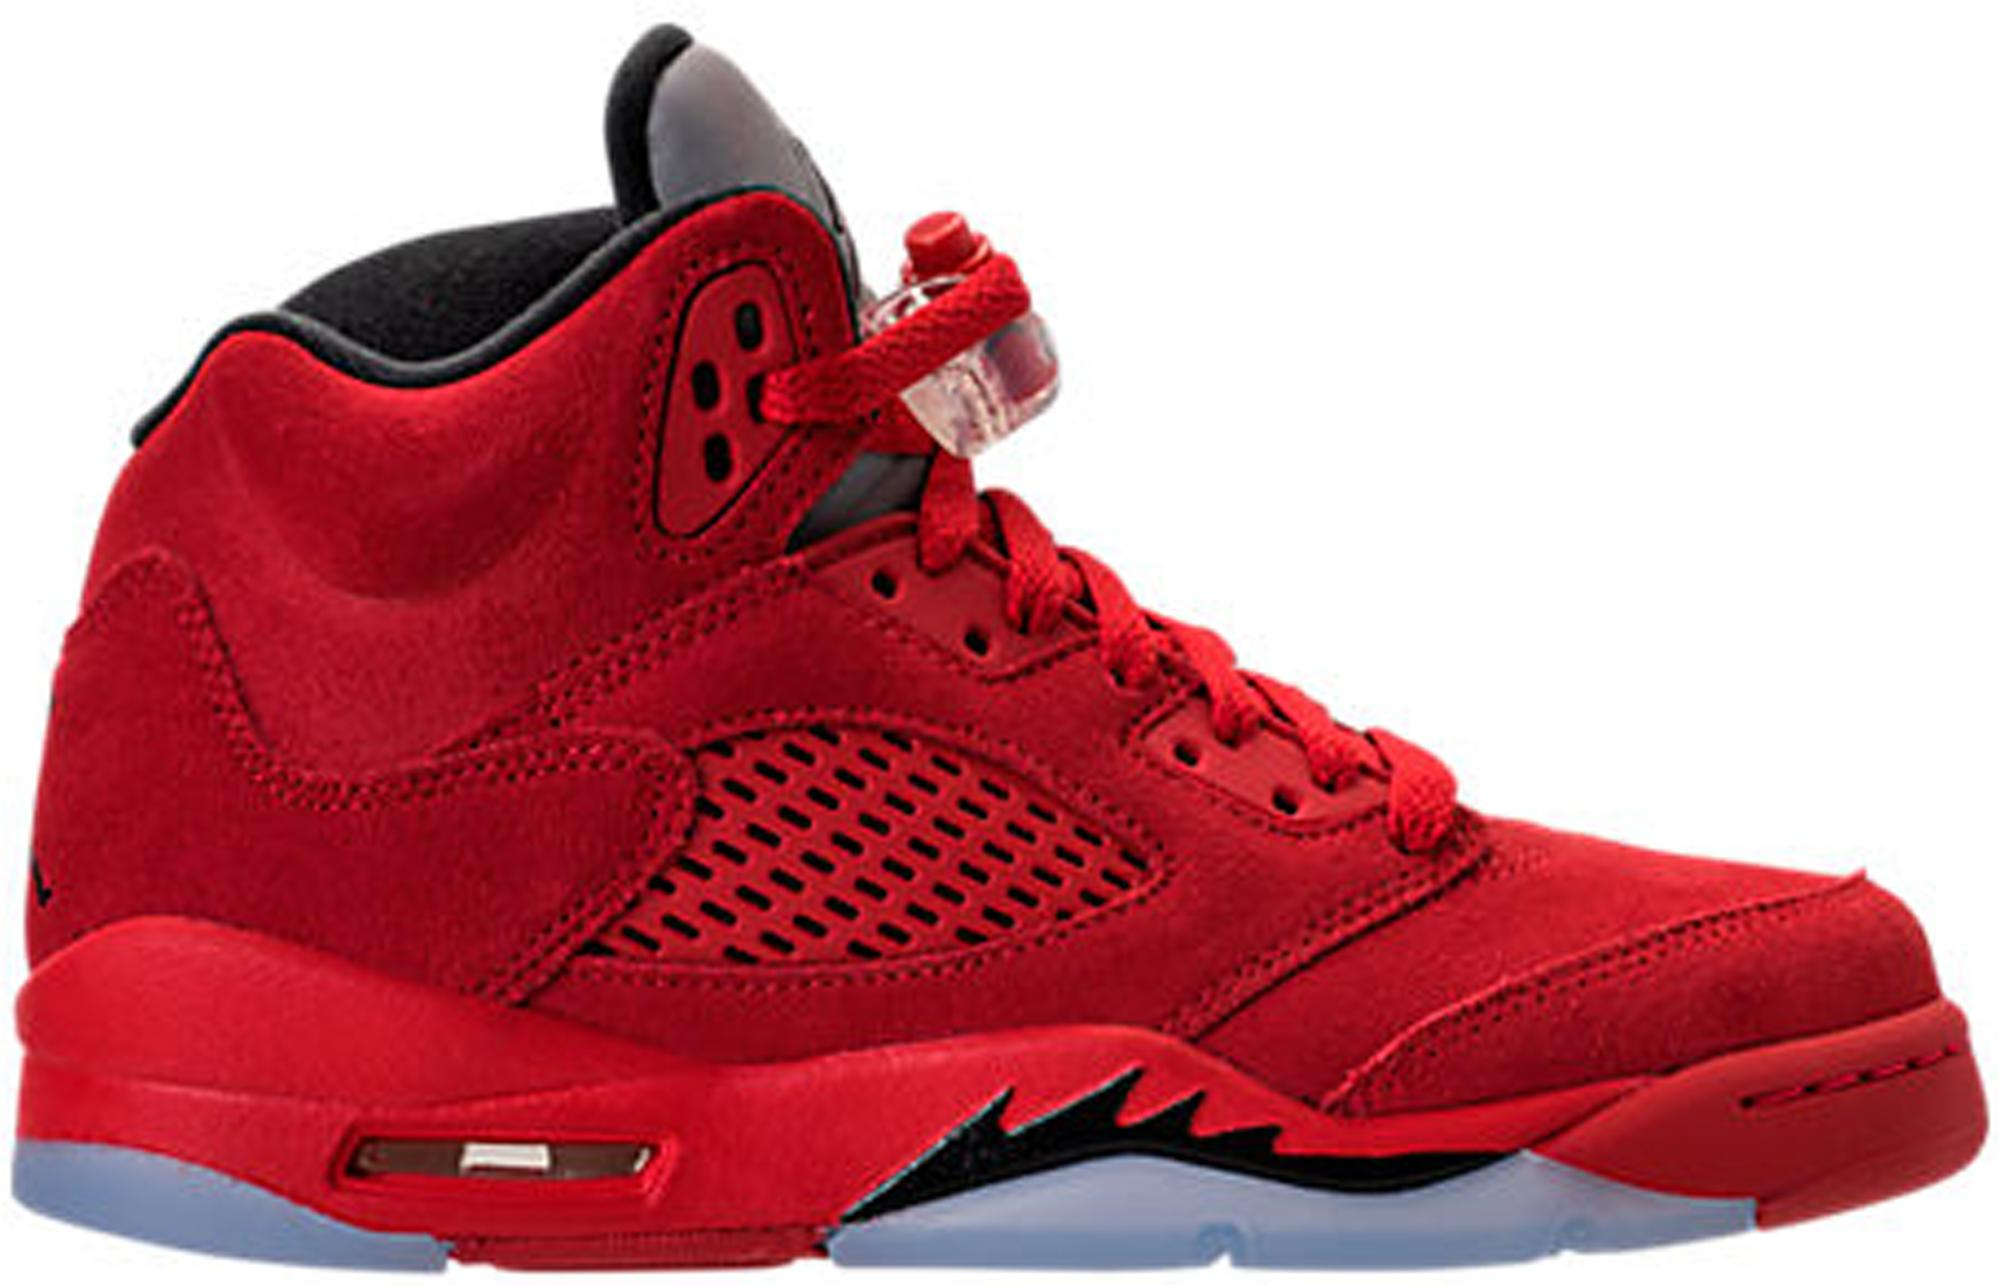 354b9187 Nike 5 Retro Red Suede (gs) in Red for Men - Lyst